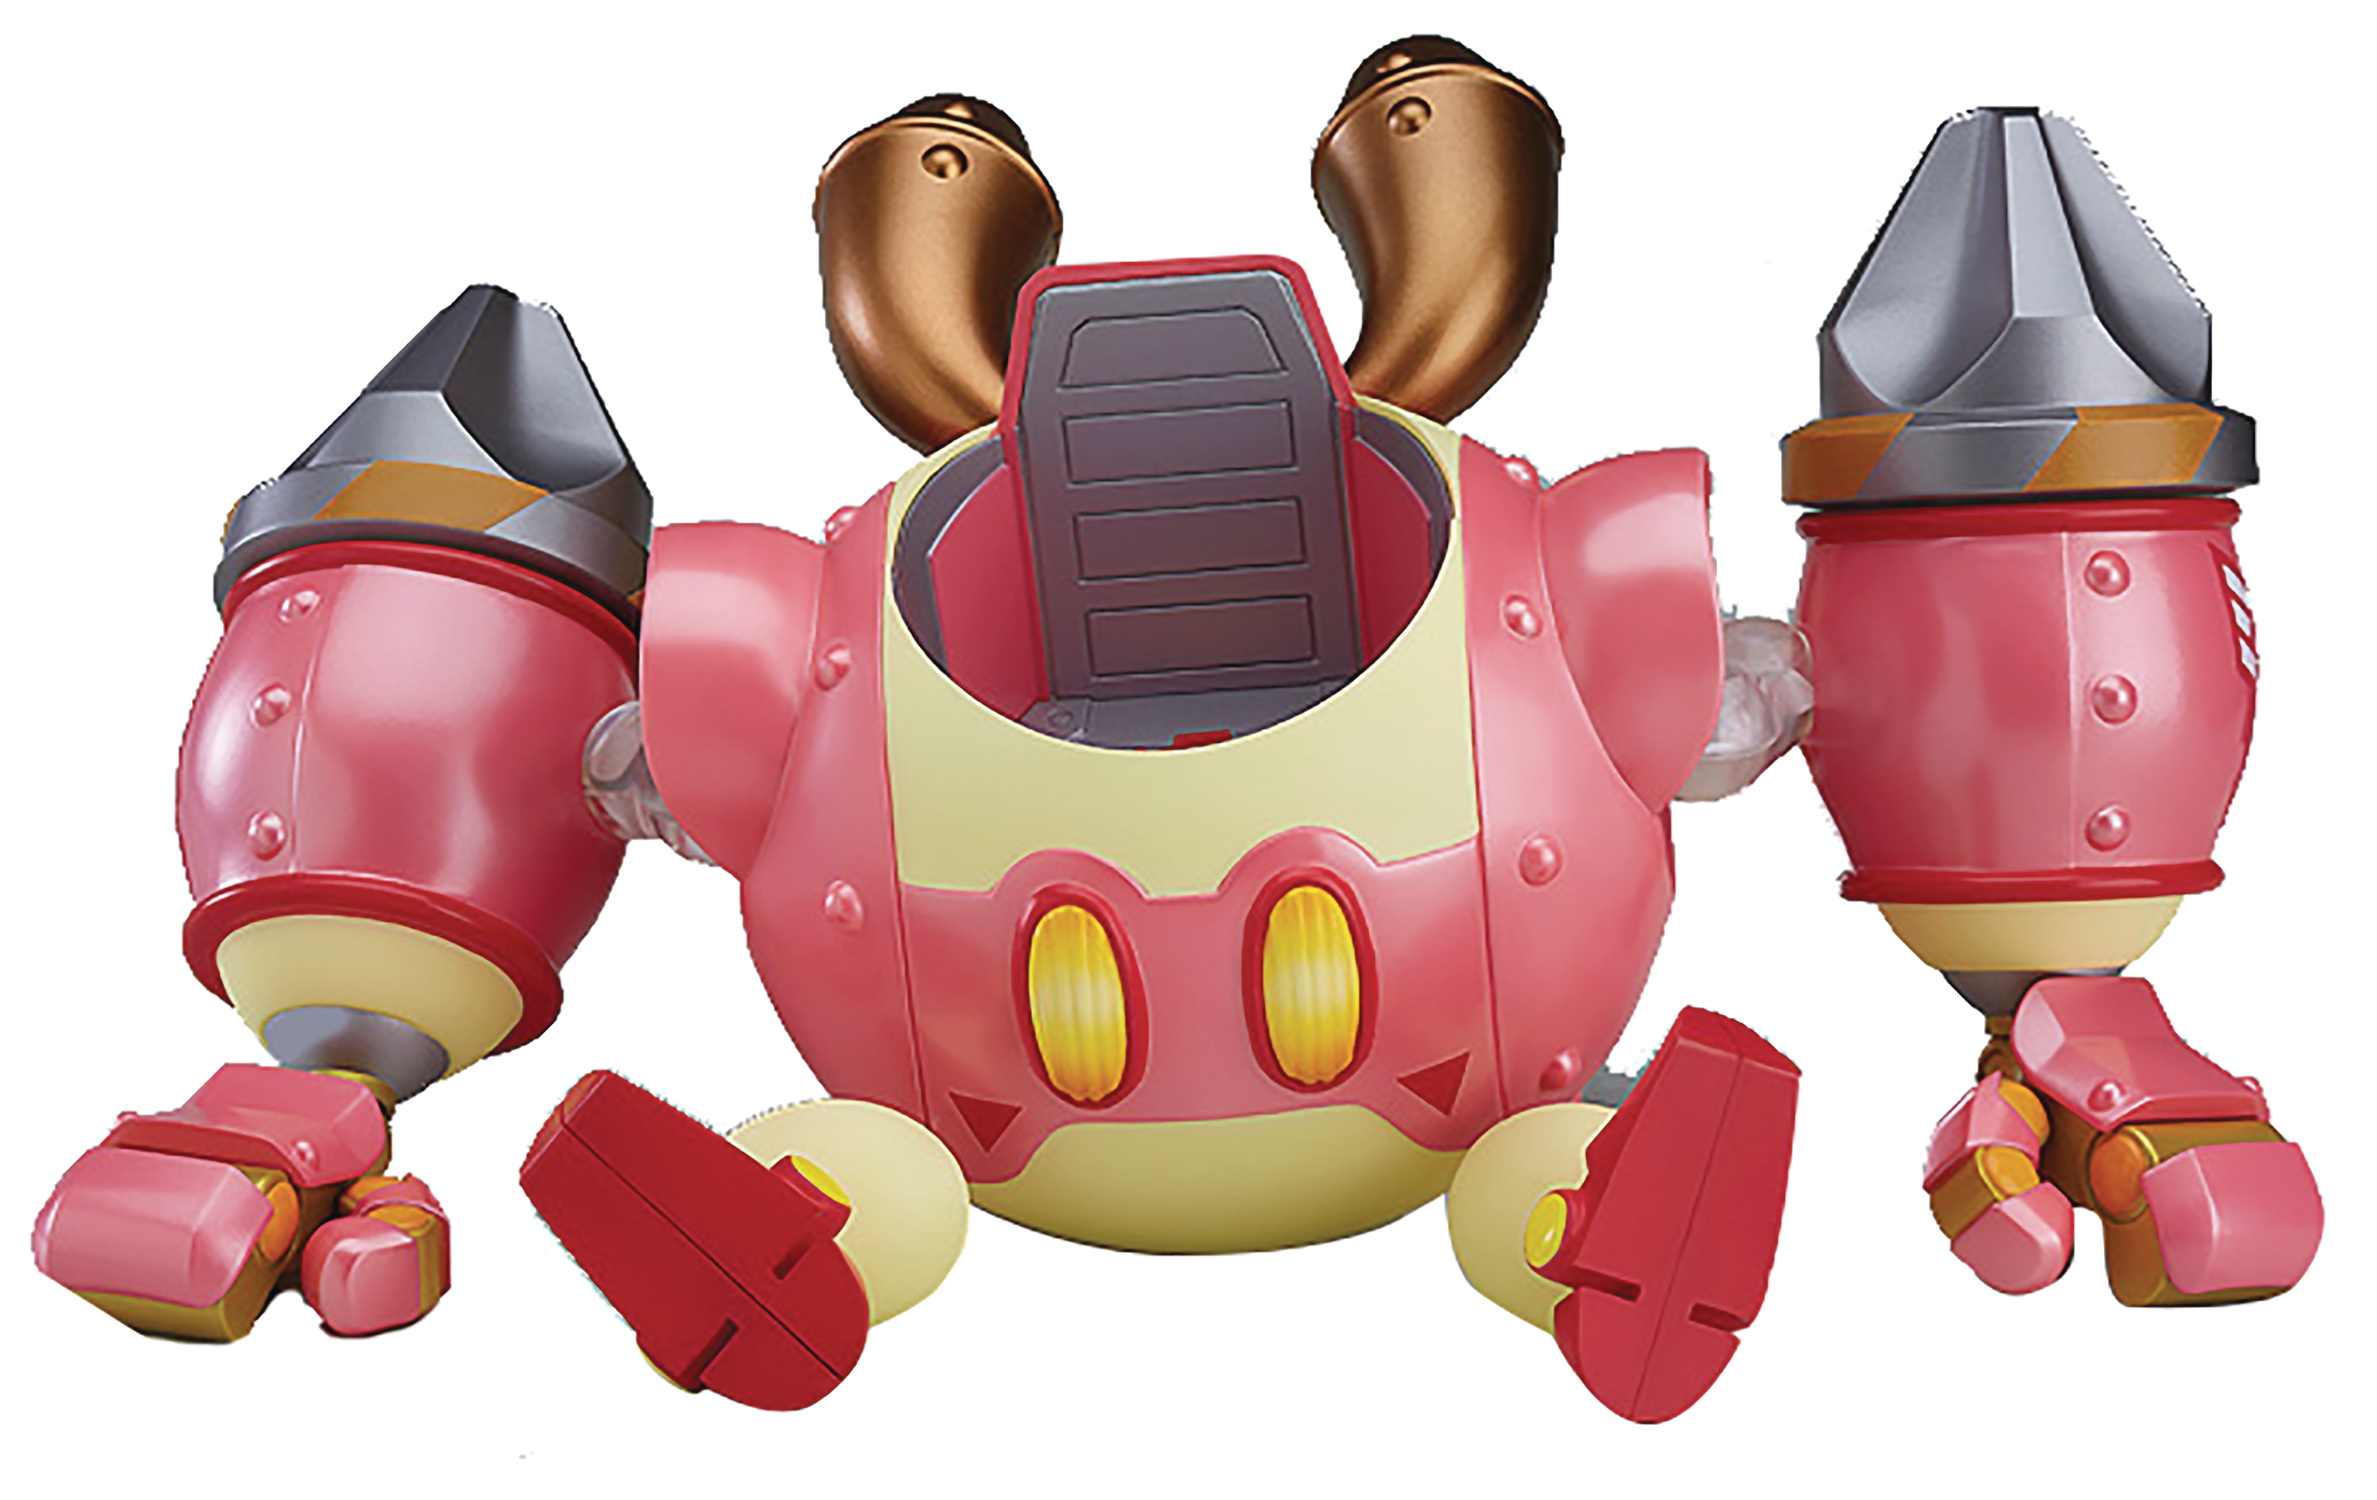 SEP178729 - KIRBY PLANET ROBOT ARMOUR NENDOROID MORE SET - Previews on